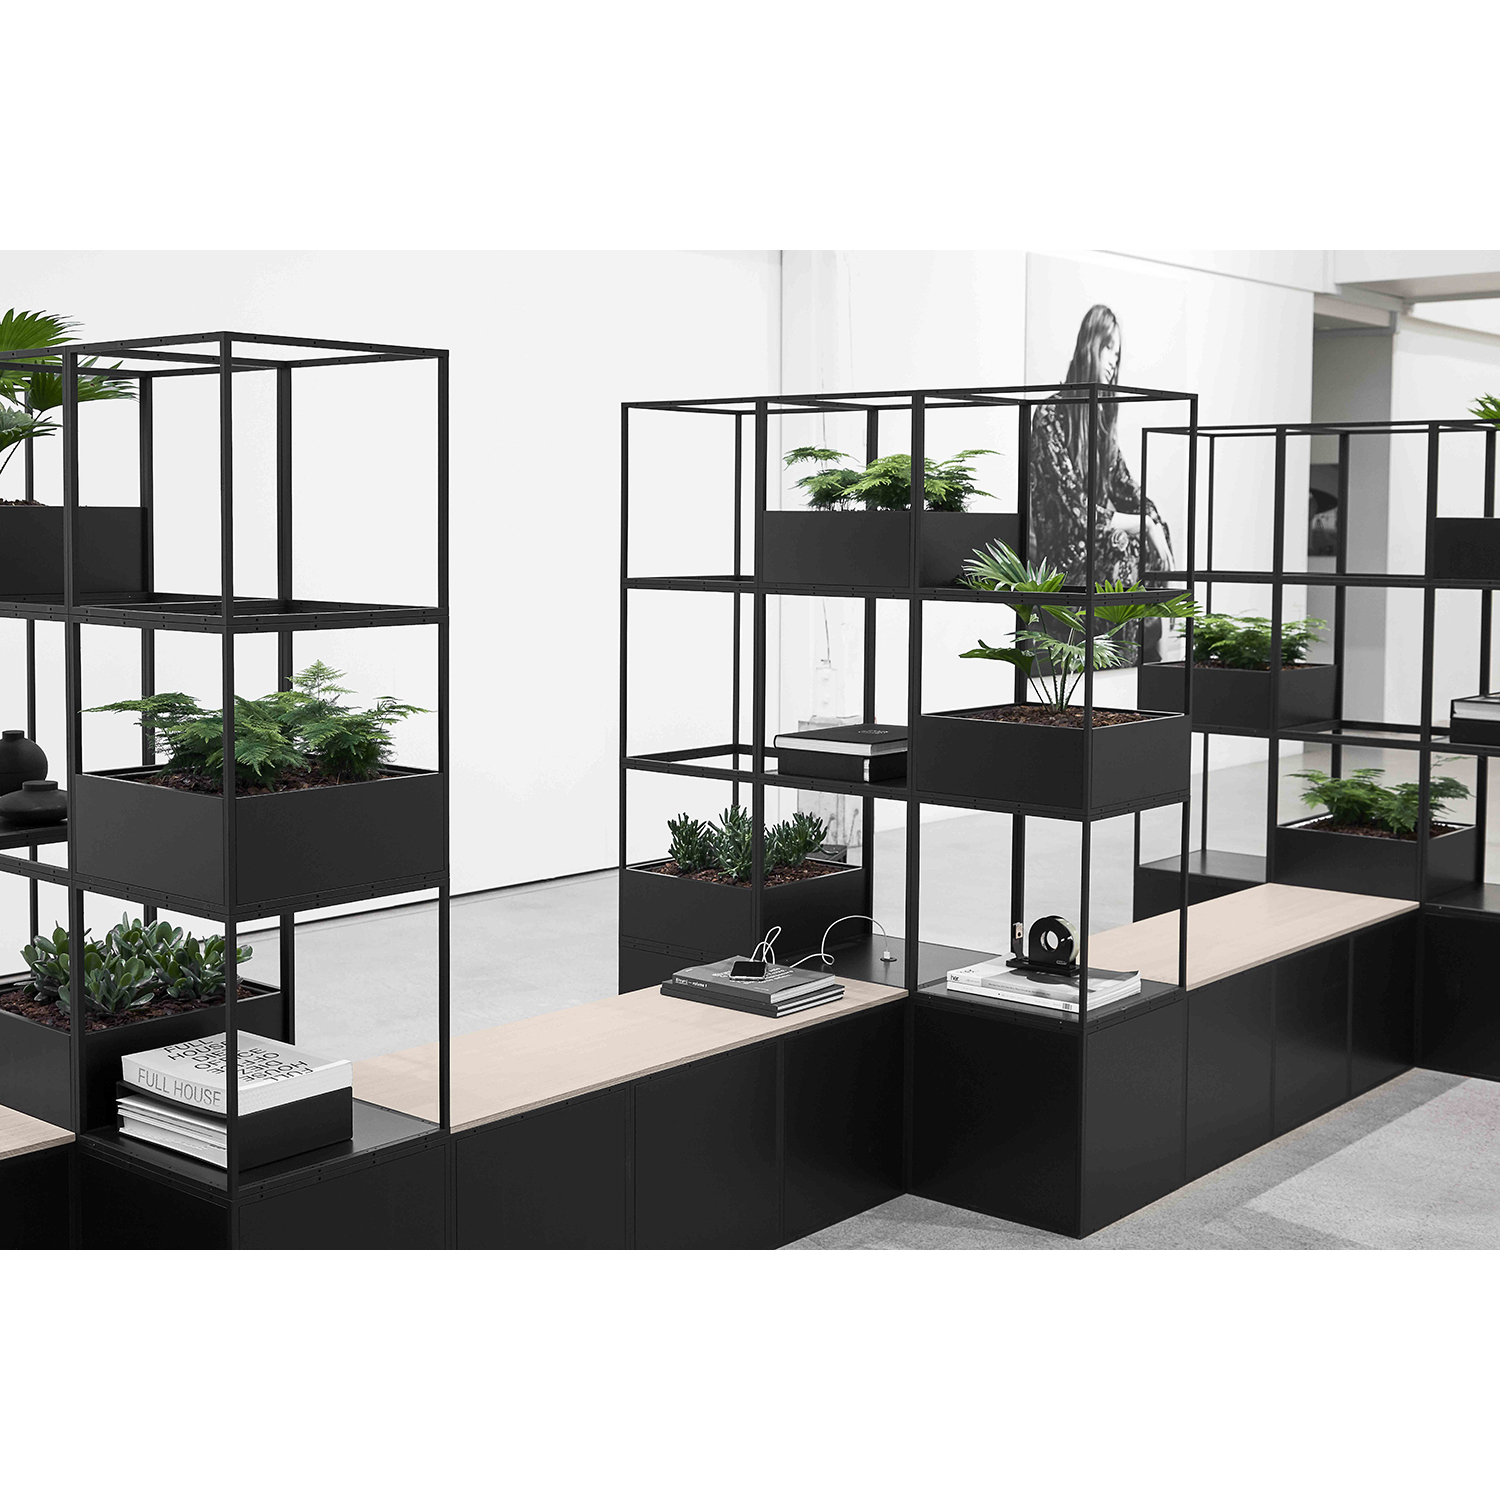 Biophyilic Grid Planters Products Icons Of Denmark